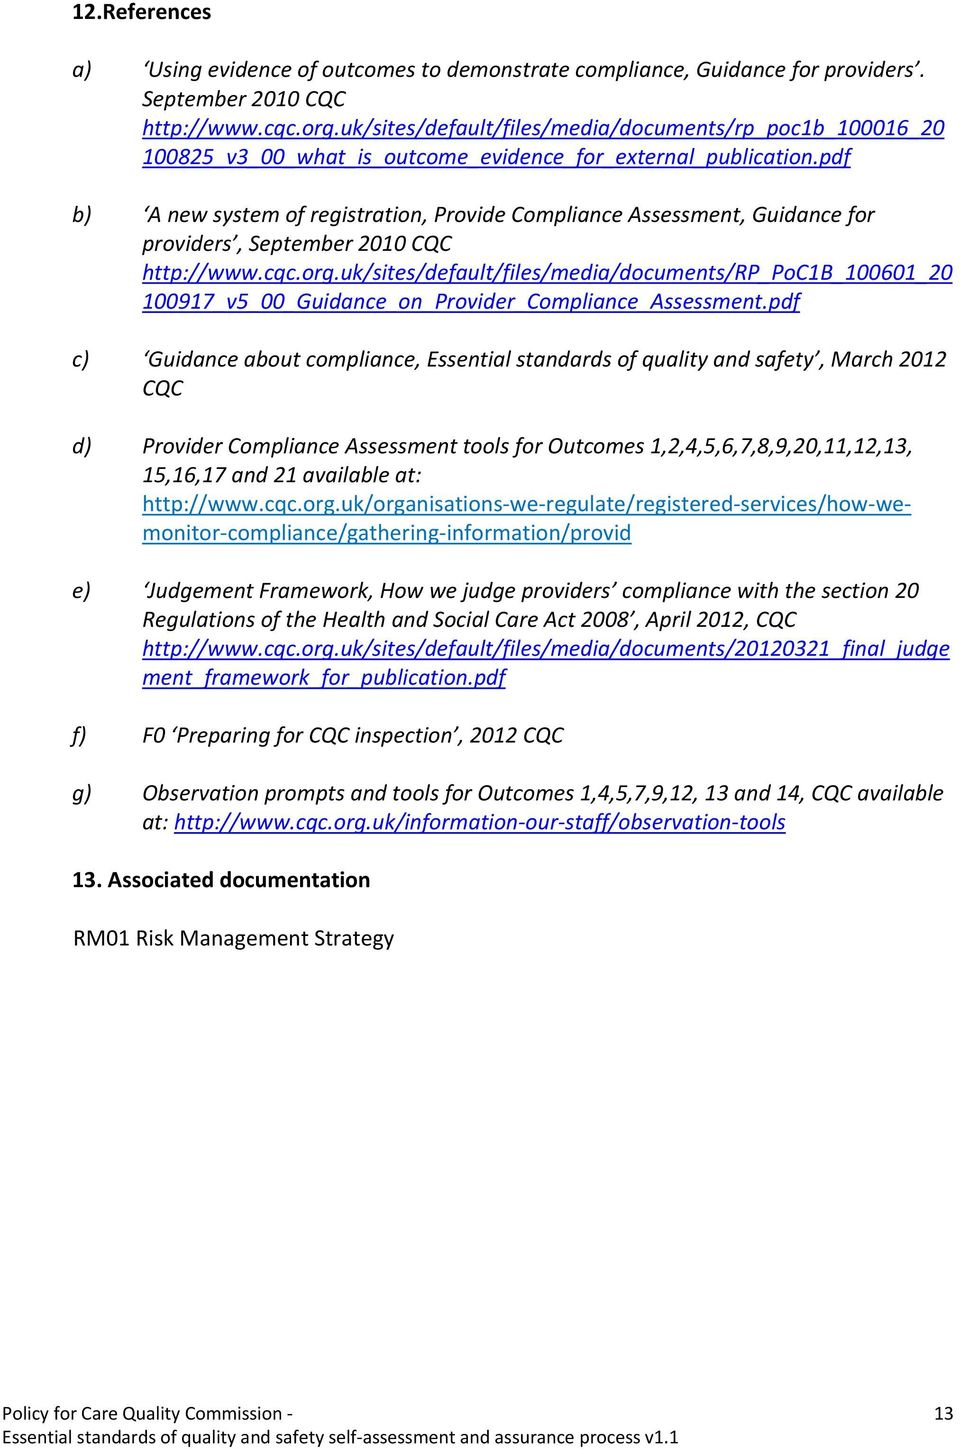 pdf b) A new system of registration, Provide Compliance Assessment, Guidance for providers, September 2010 CQC http://www.cqc.org.